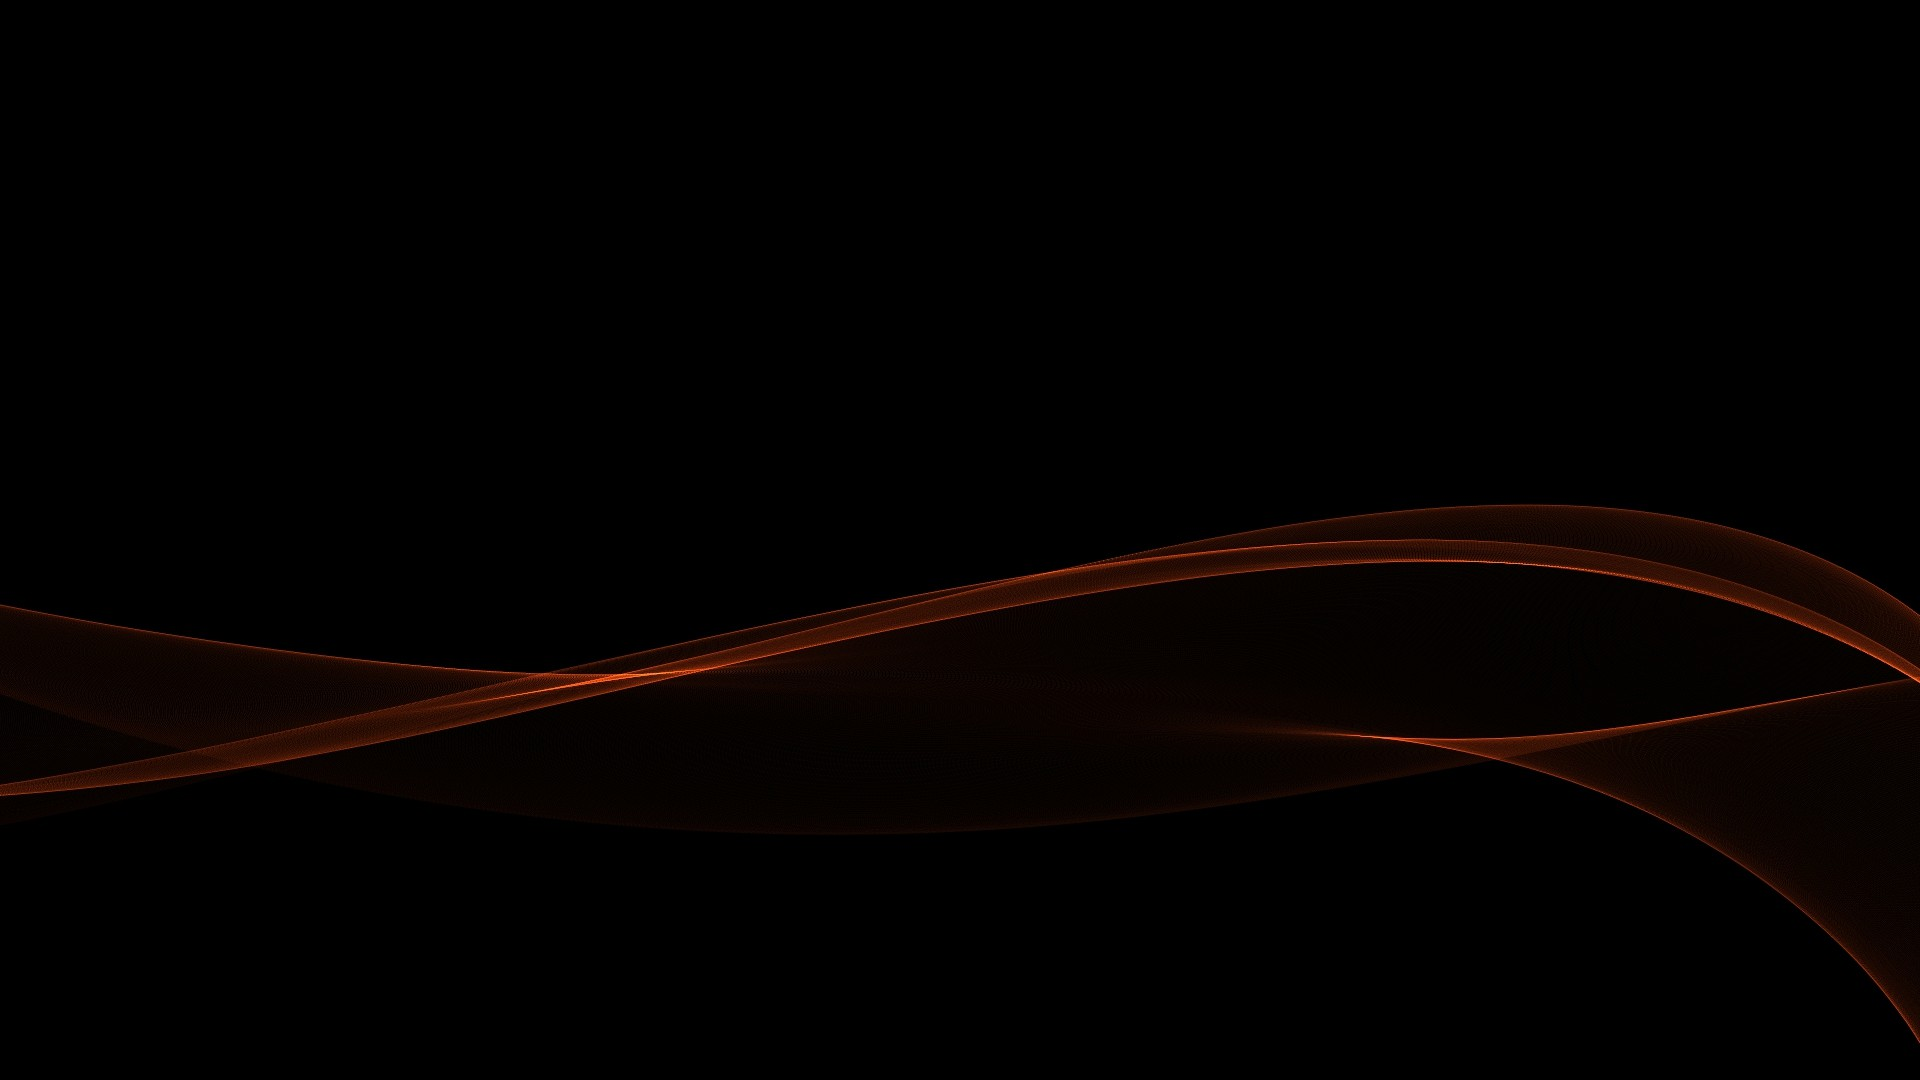 Abstract Black Minimalistic Red Waves Gradient Hd S Wallpaper